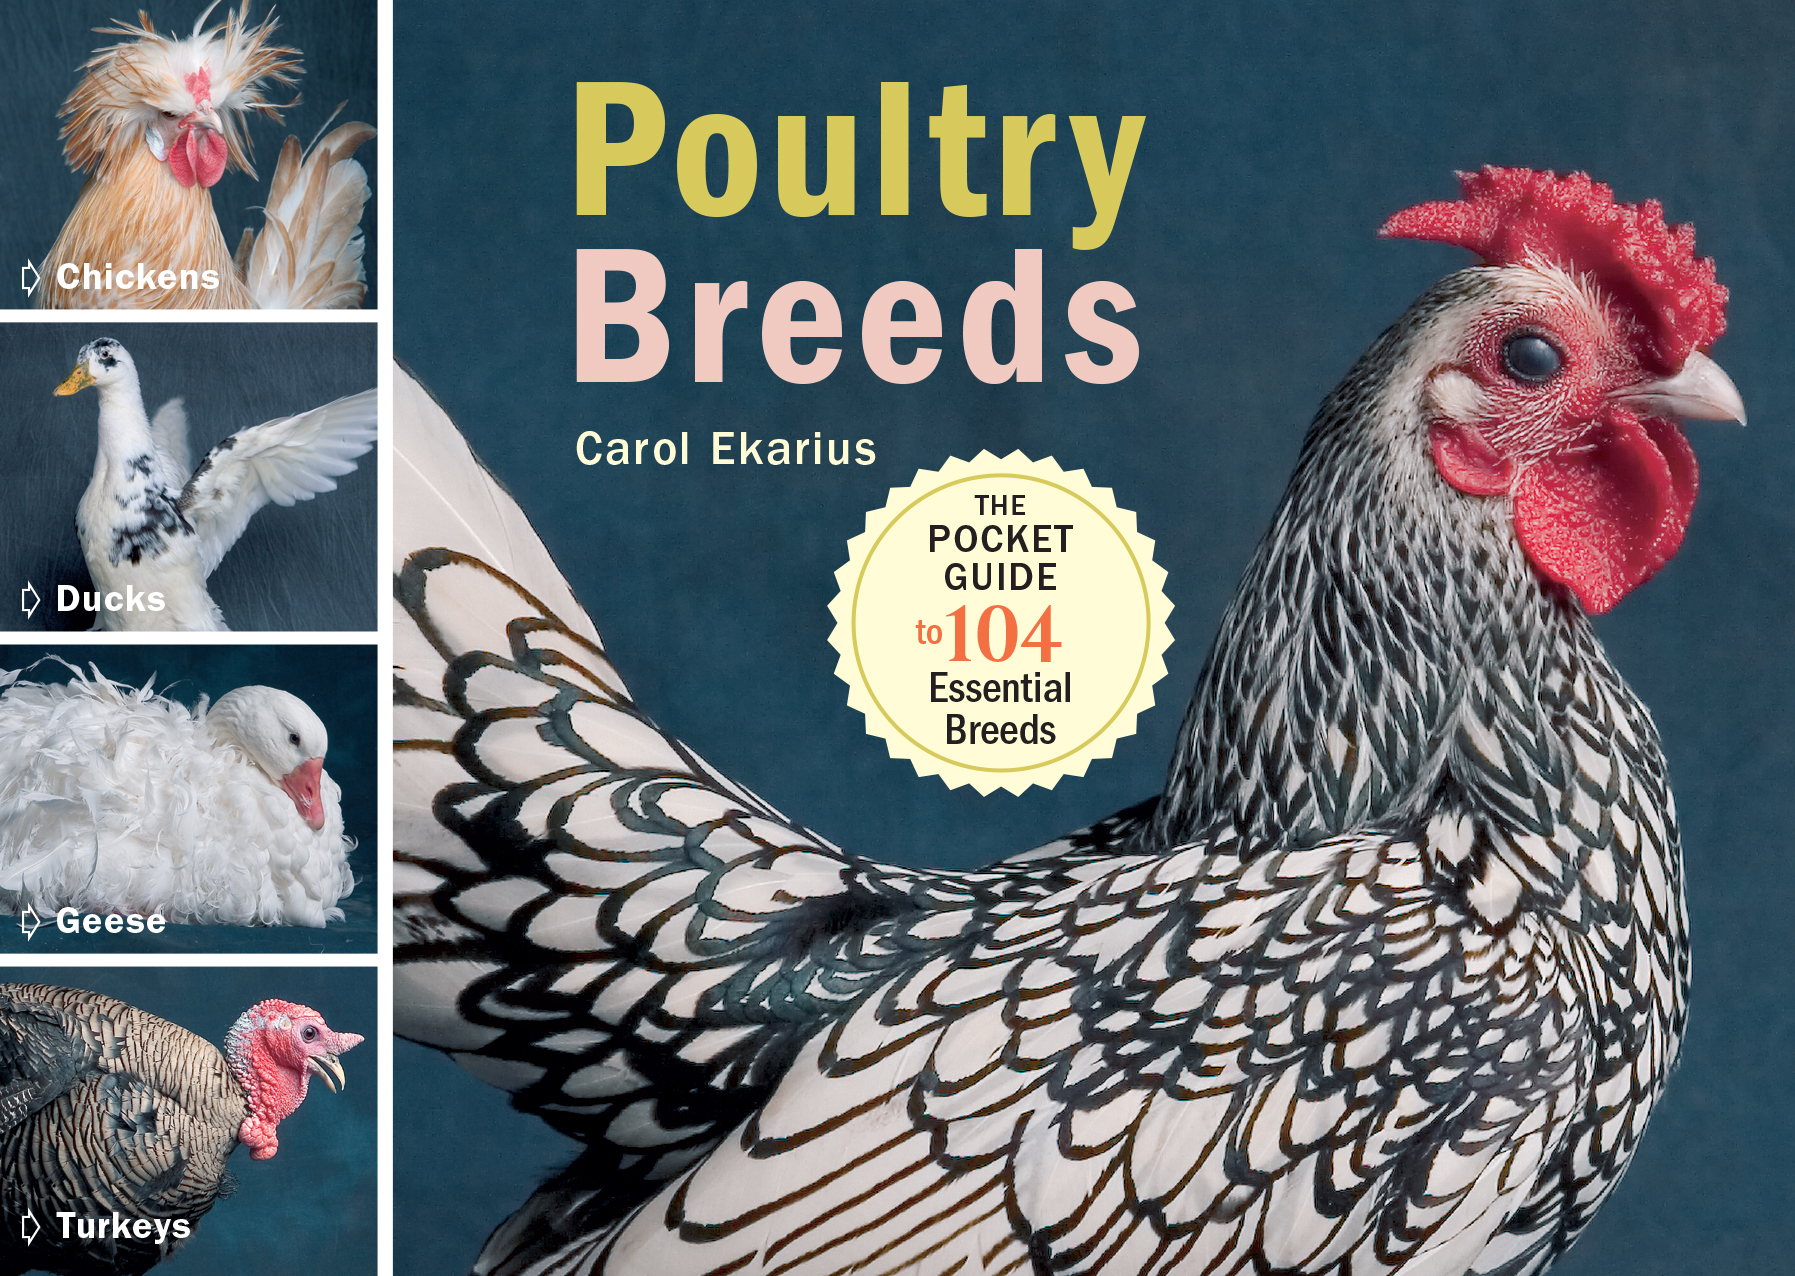 Poultry Breeds Chickens, Ducks, Geese, Turkeys: The Pocket Guide to 104 Essential Breeds - Carol Ekarius